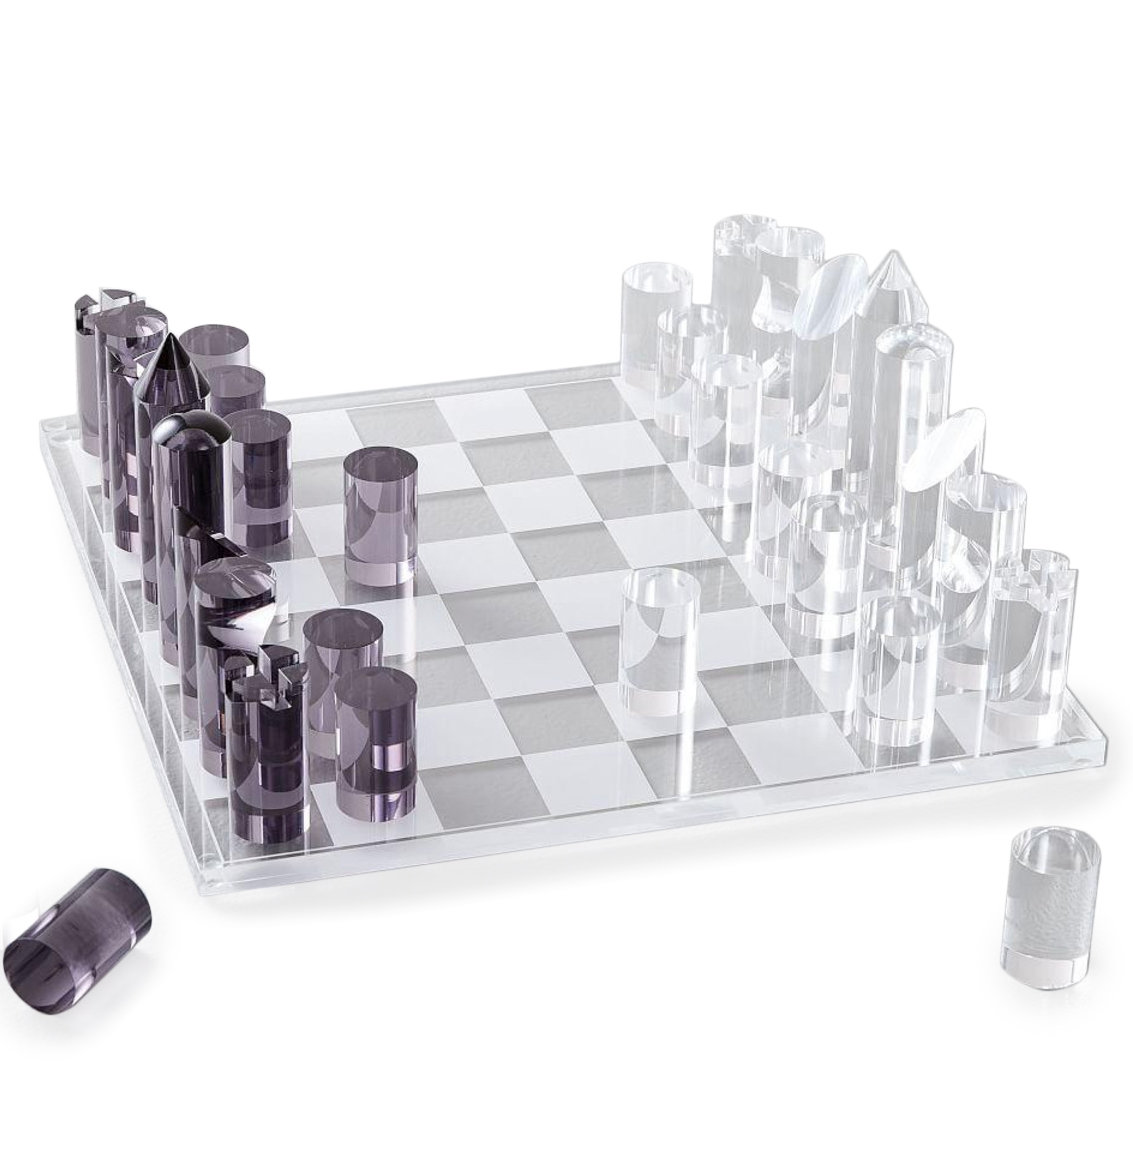 Best Christmas gifts 2019 - West Elm Acrylic Chess